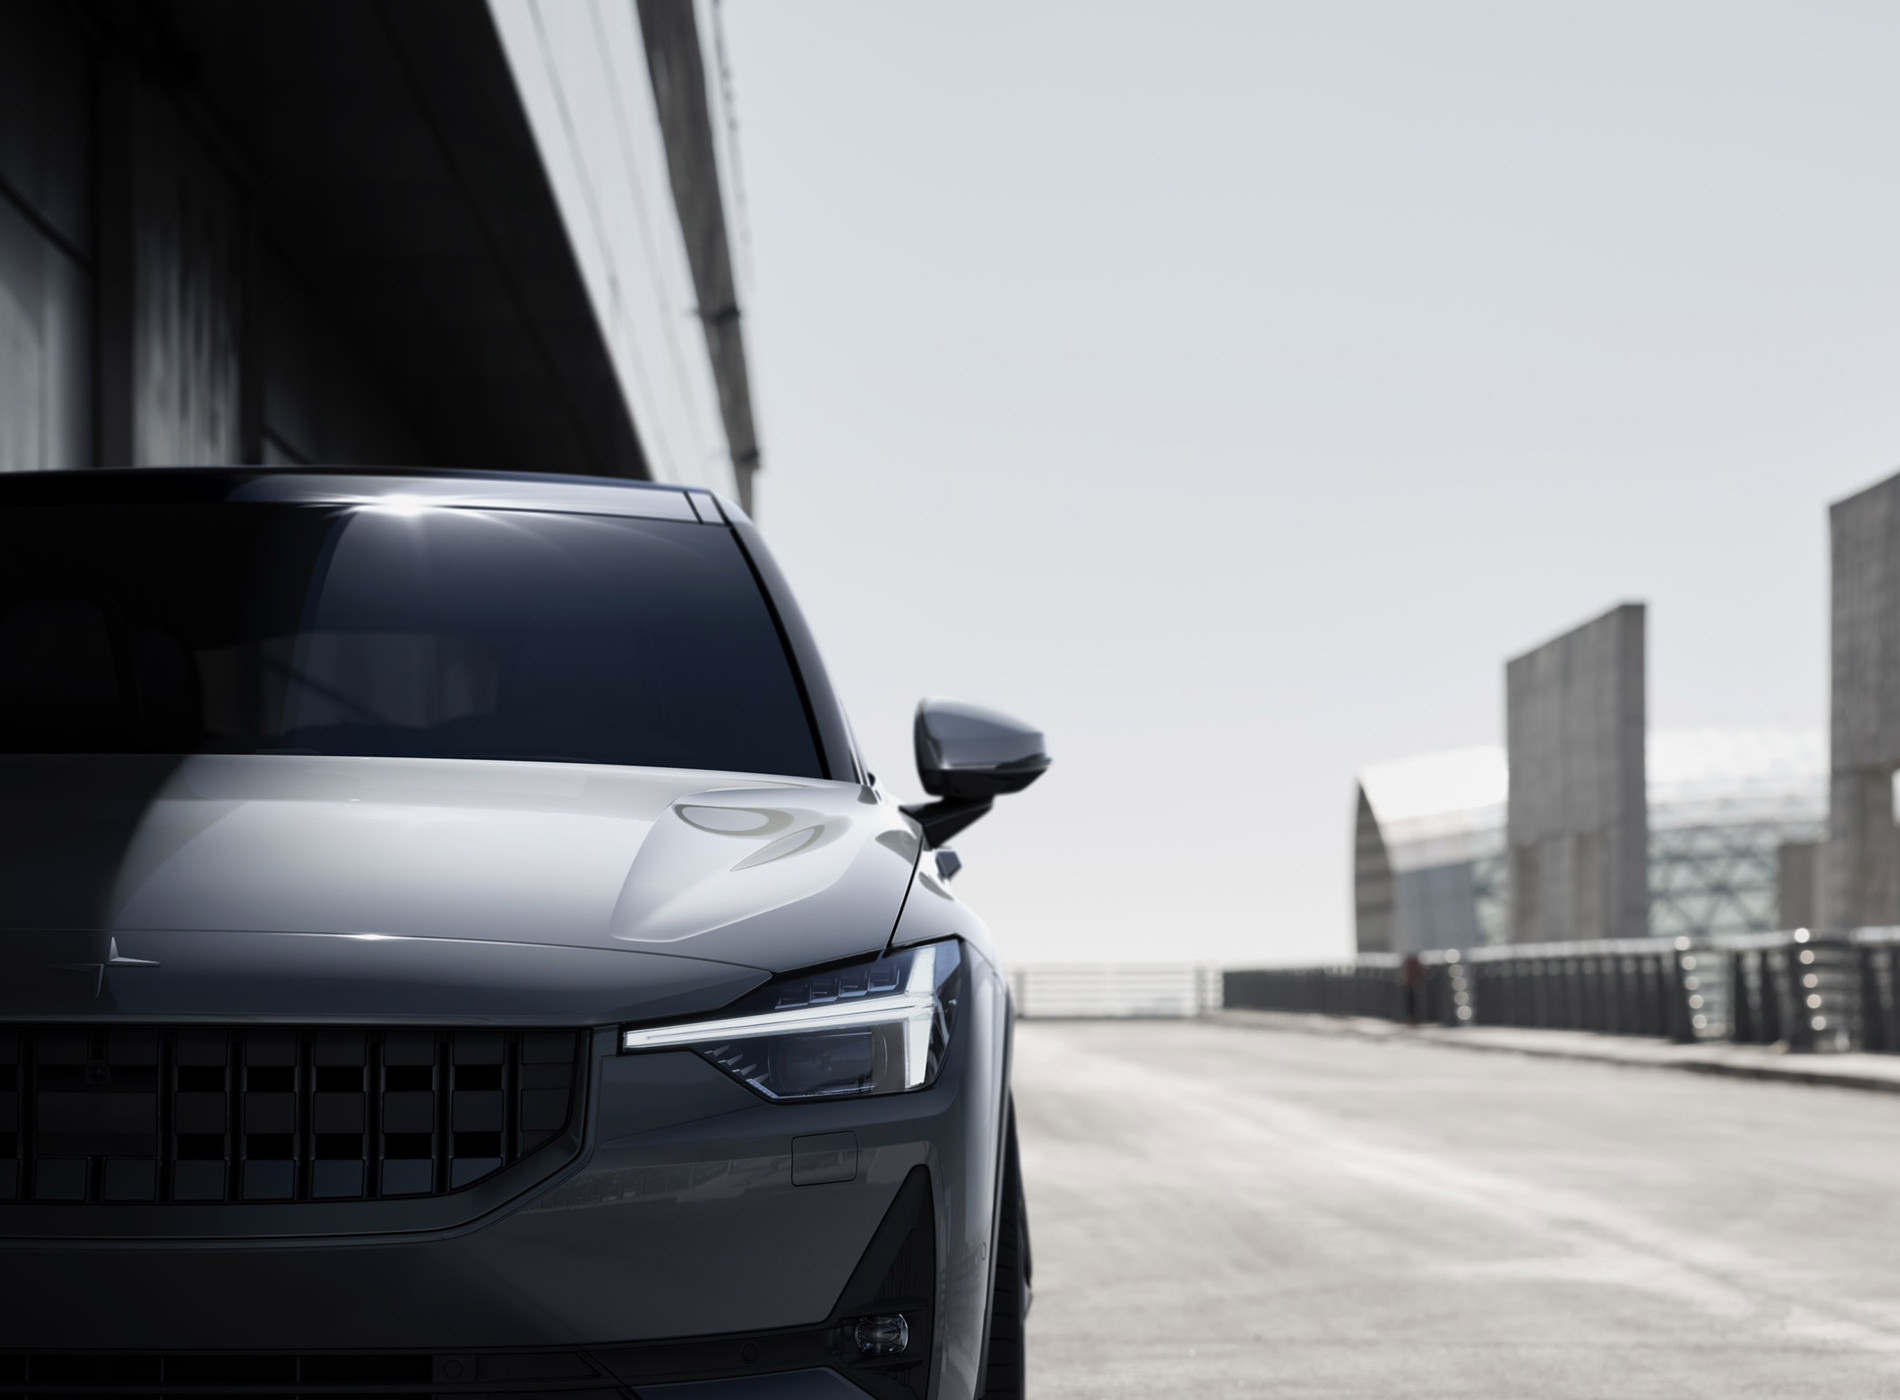 The Polestar 2 Electric Car Shangai Package White Détails